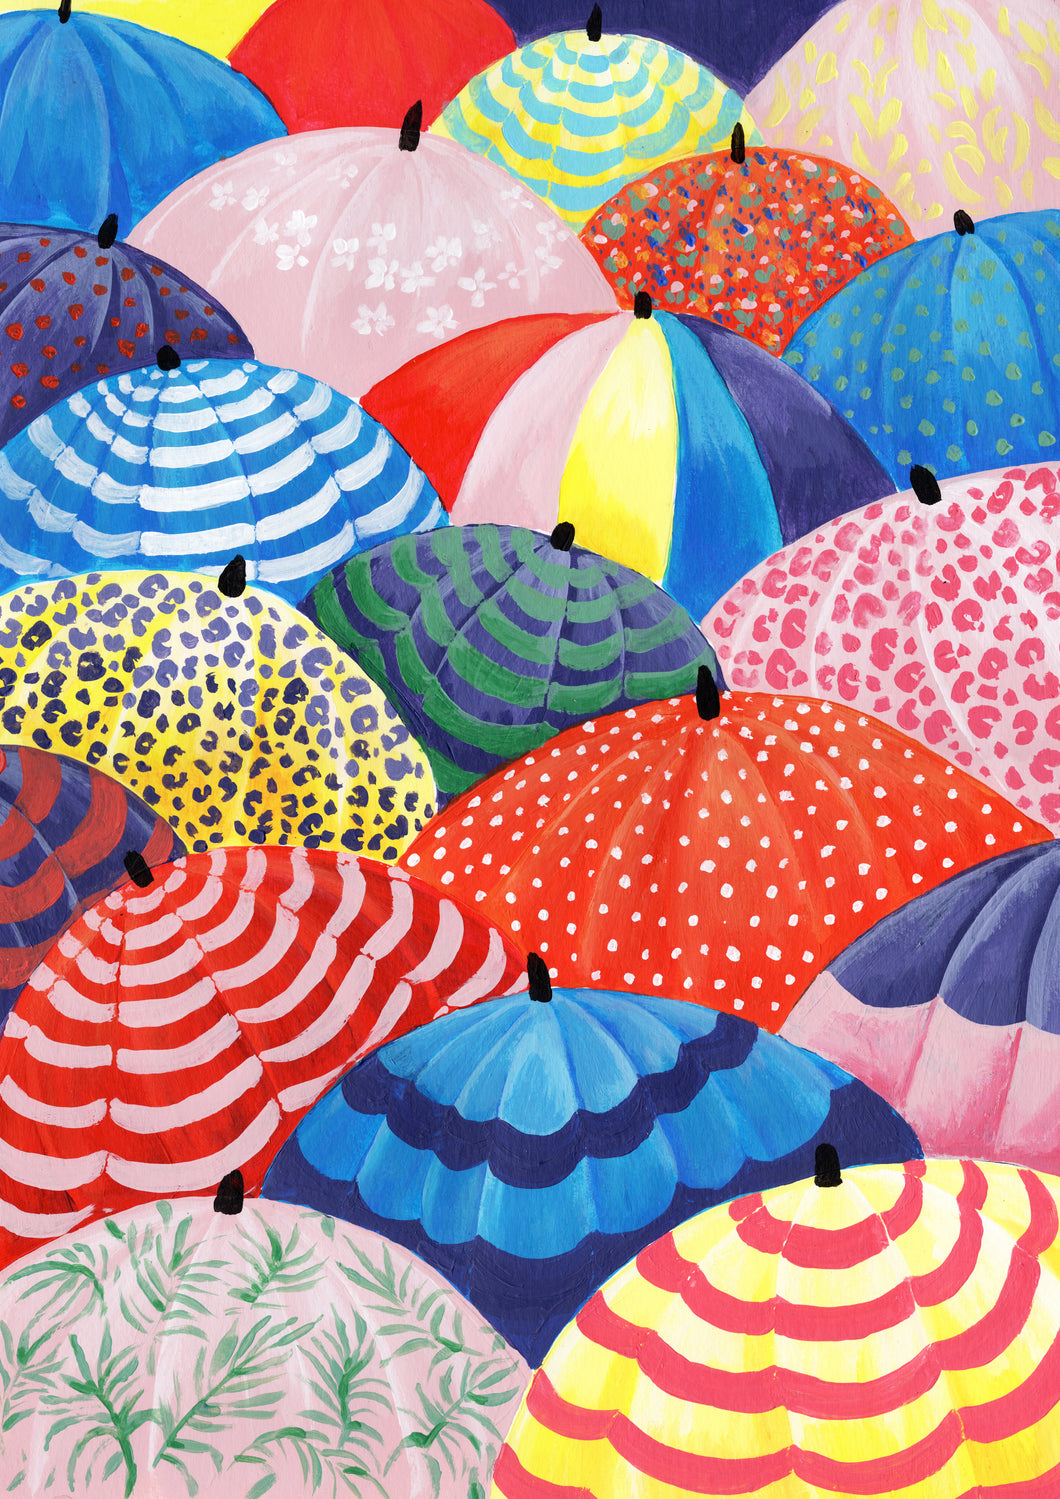 Umbrellas Illustration